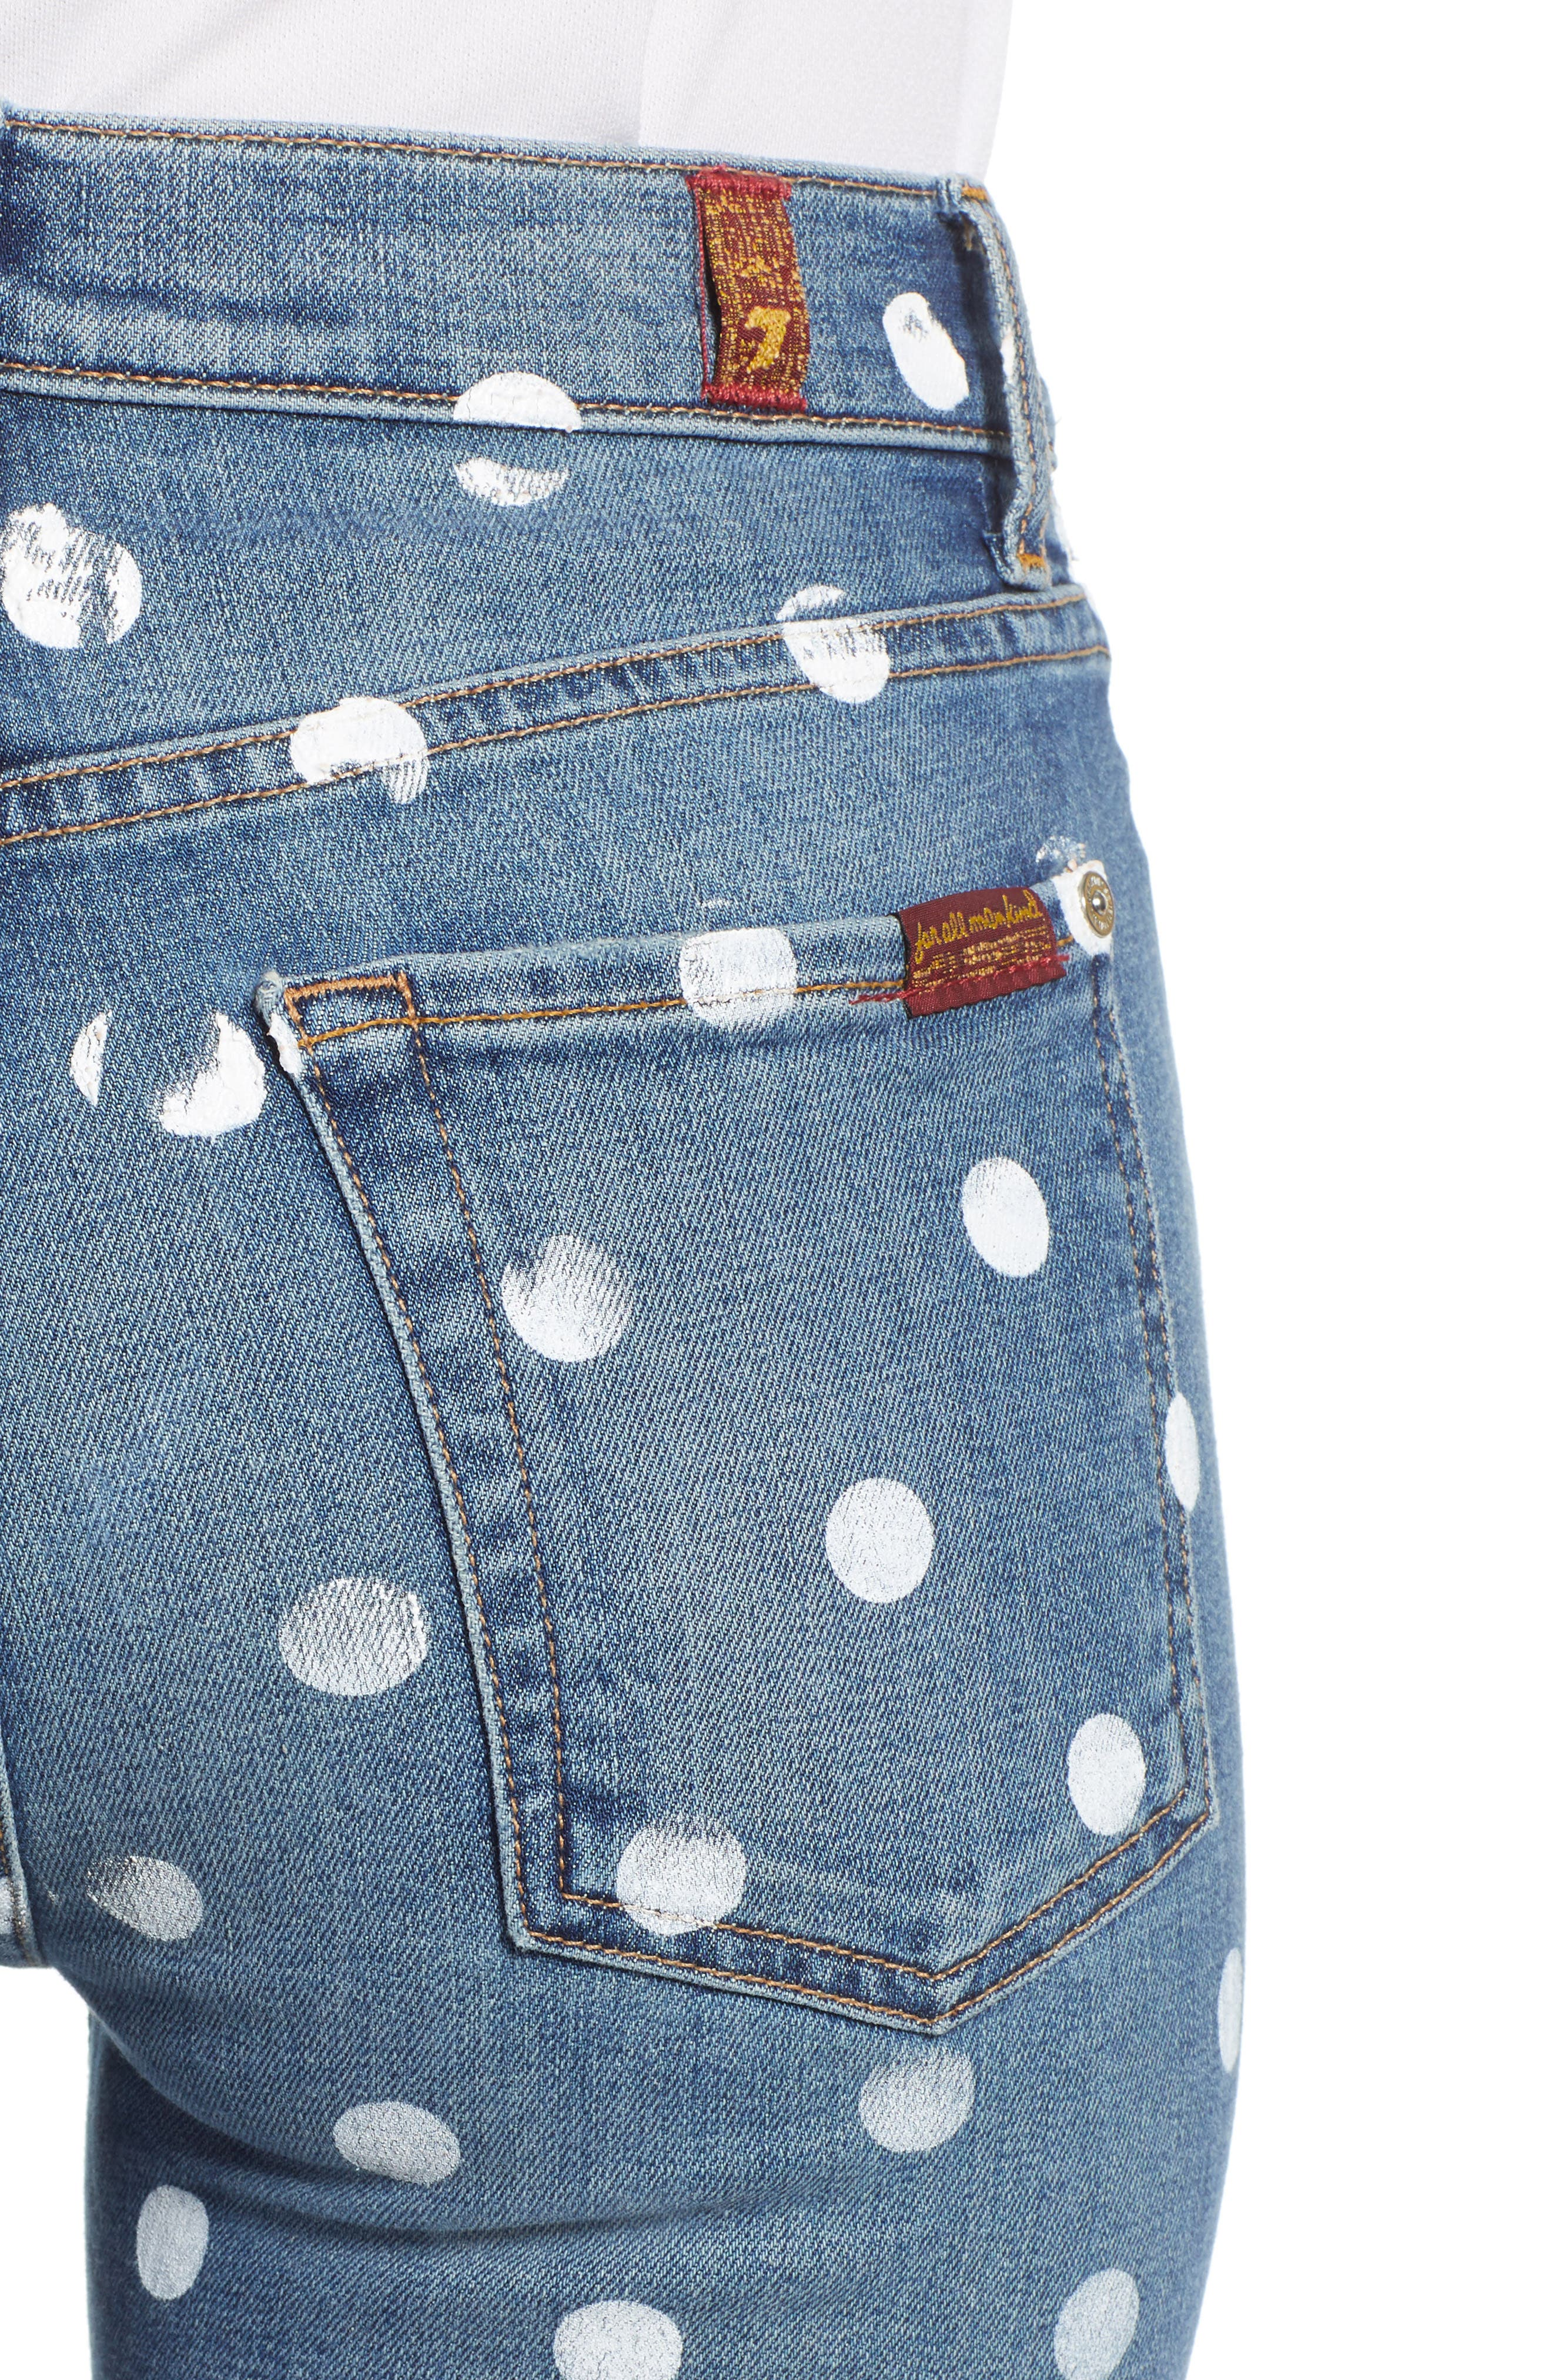 7 FOR ALL MANKIND<SUP>®</SUP>, Polka Dot High Waist Ankle Skinny Jeans, Alternate thumbnail 5, color, RIDGEMONT VINTAGE